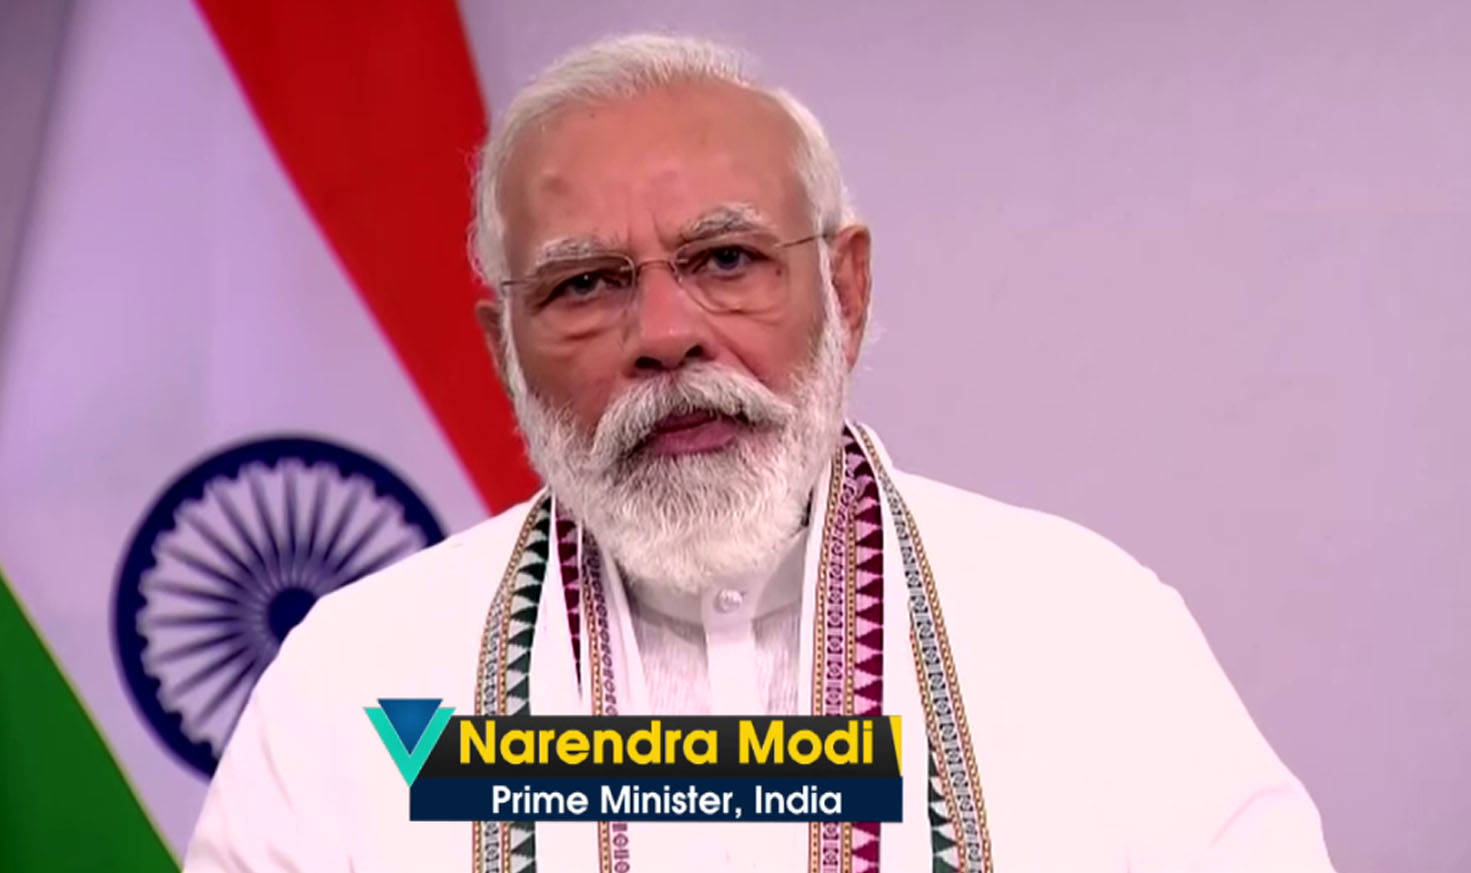 asadha-poornima-teachings-of-lord-buddha-celebrate-simplicity-in-thought-action-says-pm-modi